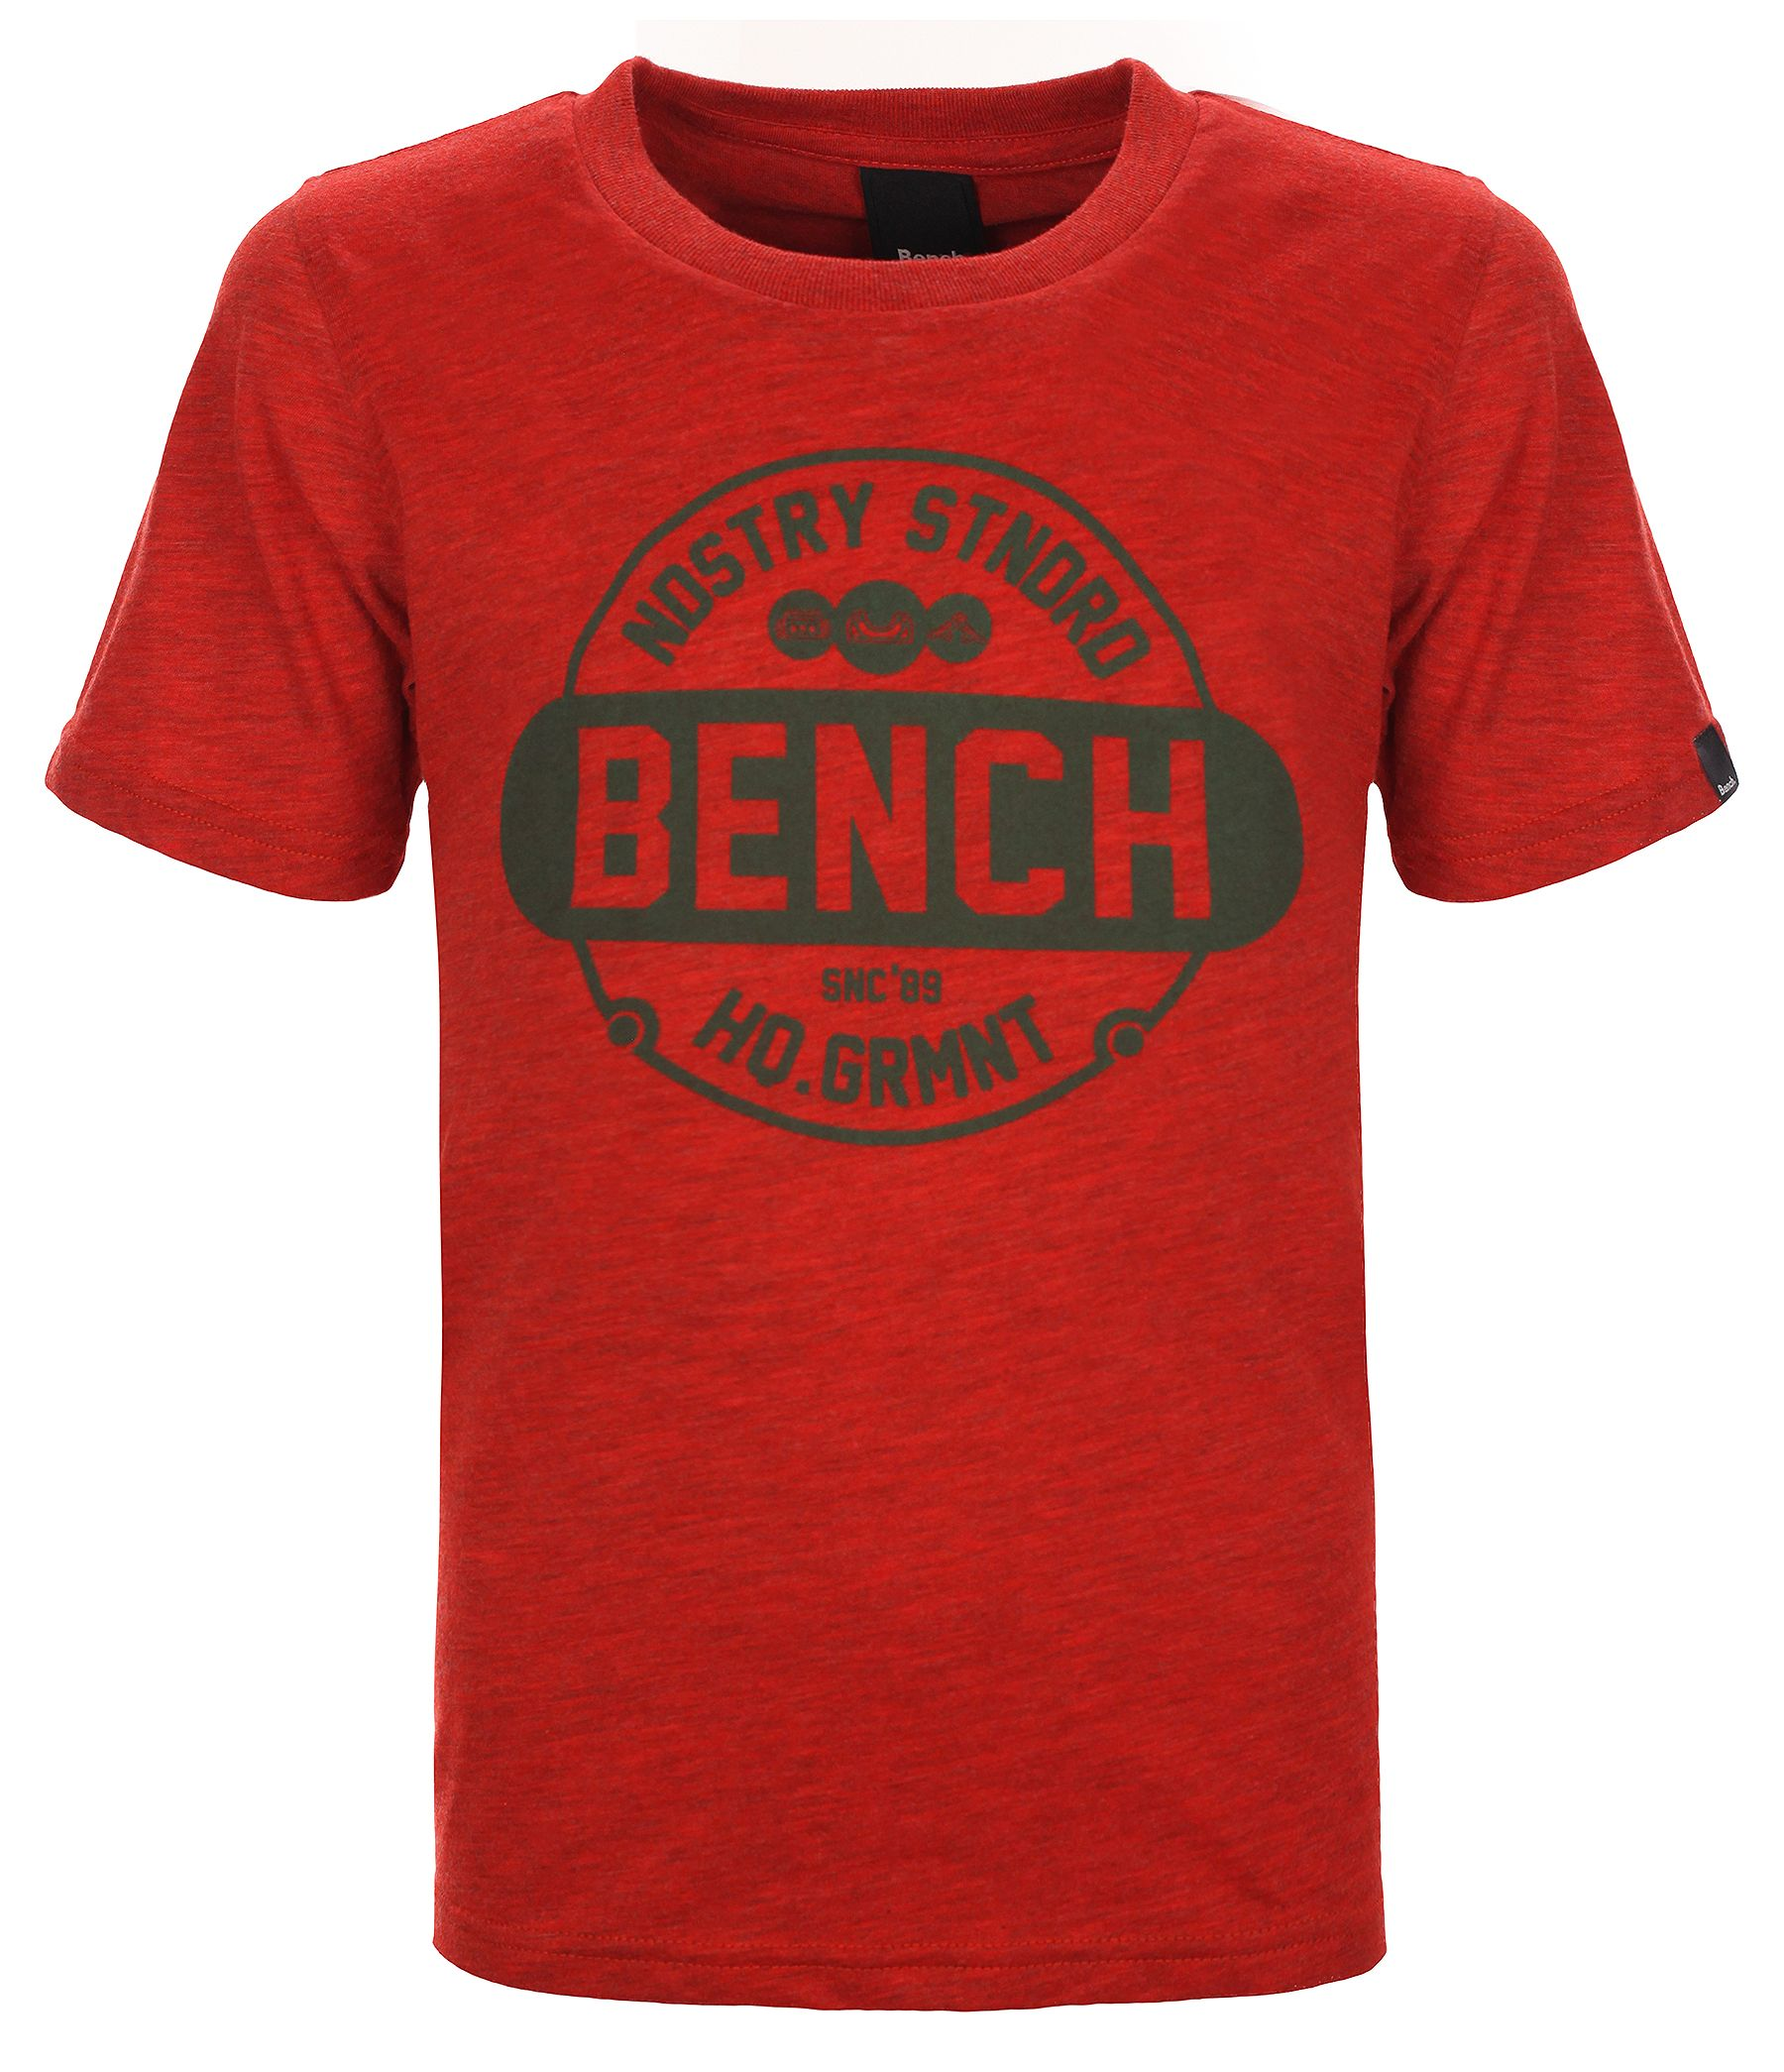 Boys bench skate t-shirt